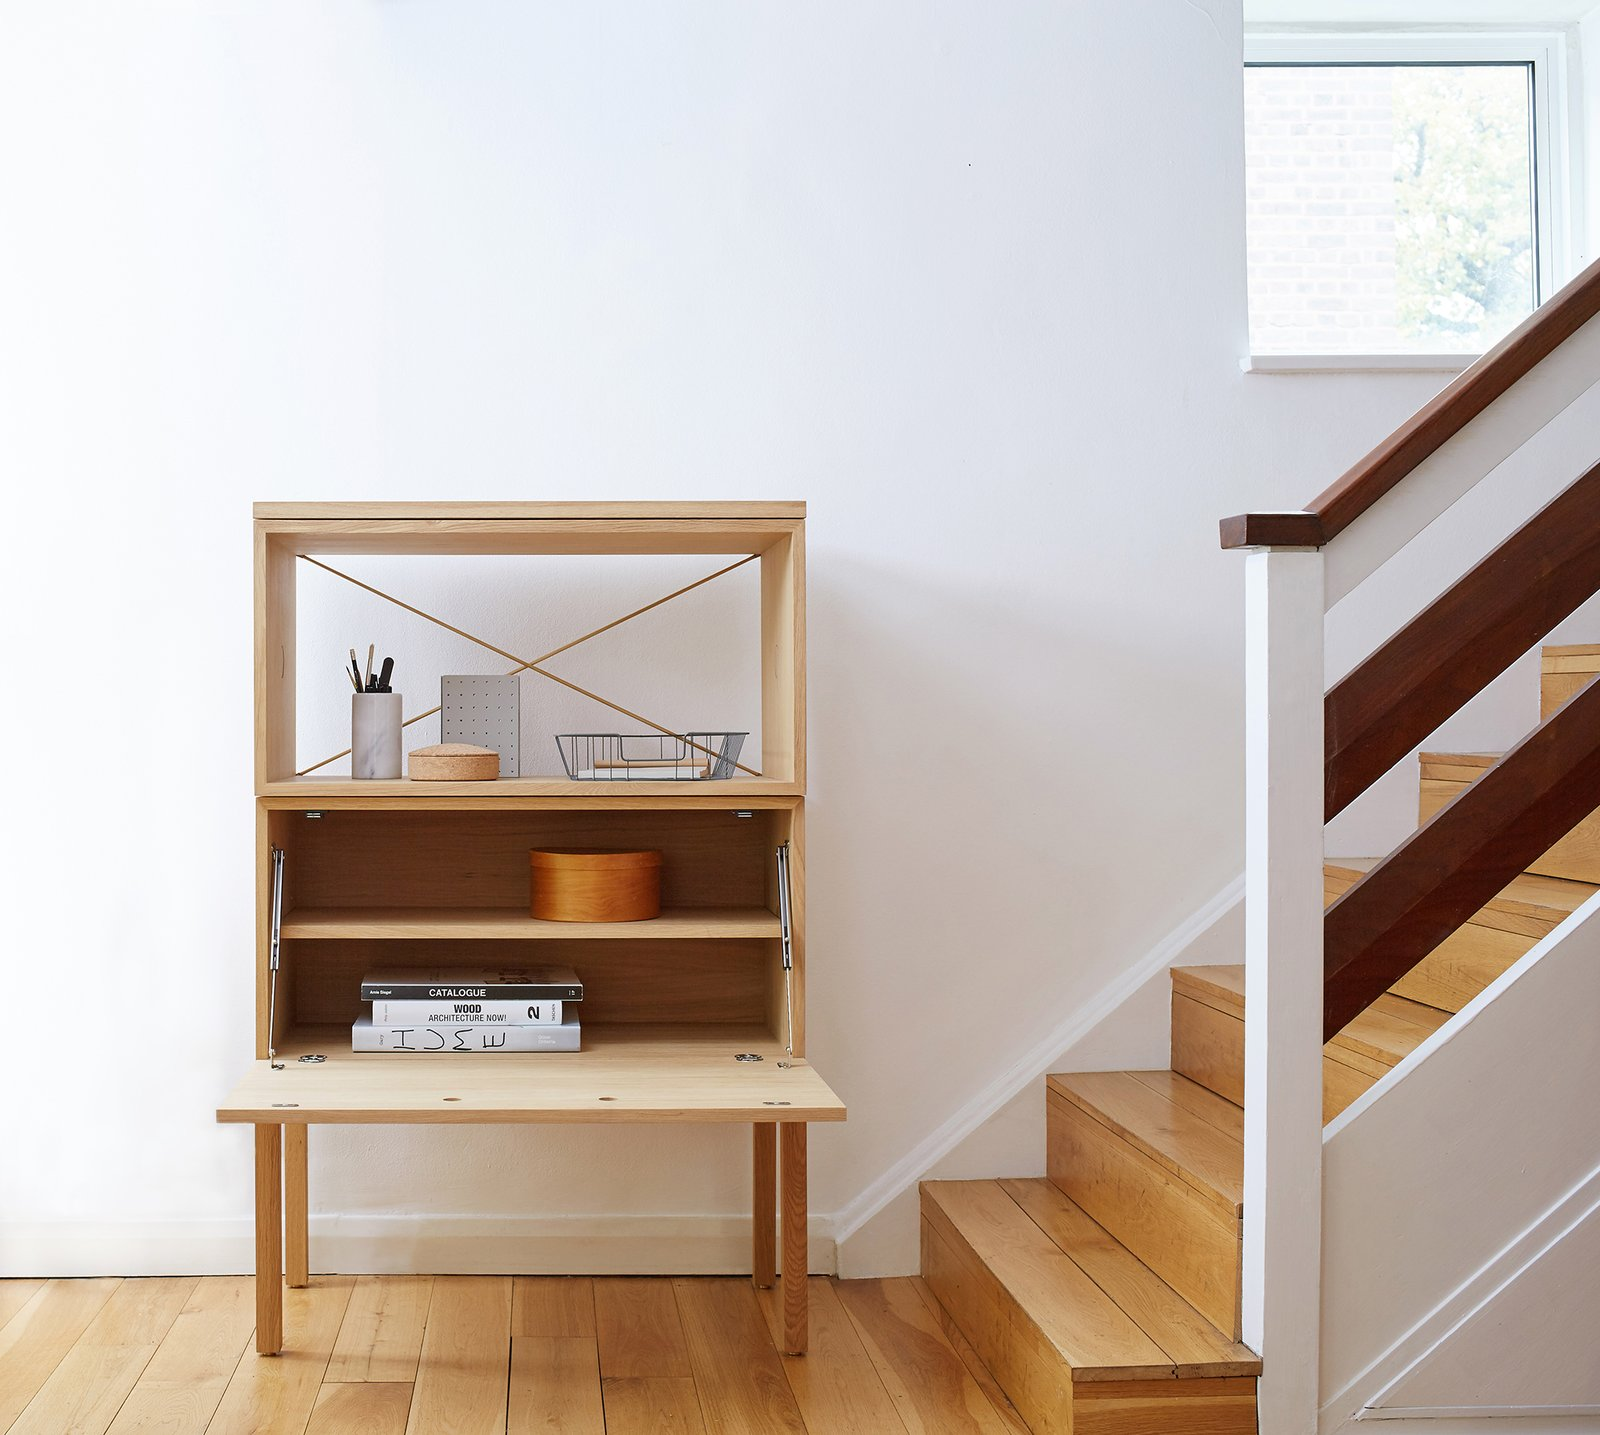 British brand Beynon specializes in clever adaptions of accessible 1950s modular furniture, like their compact bureau with removable shelves.  Shape-Shifters: Modular Furniture